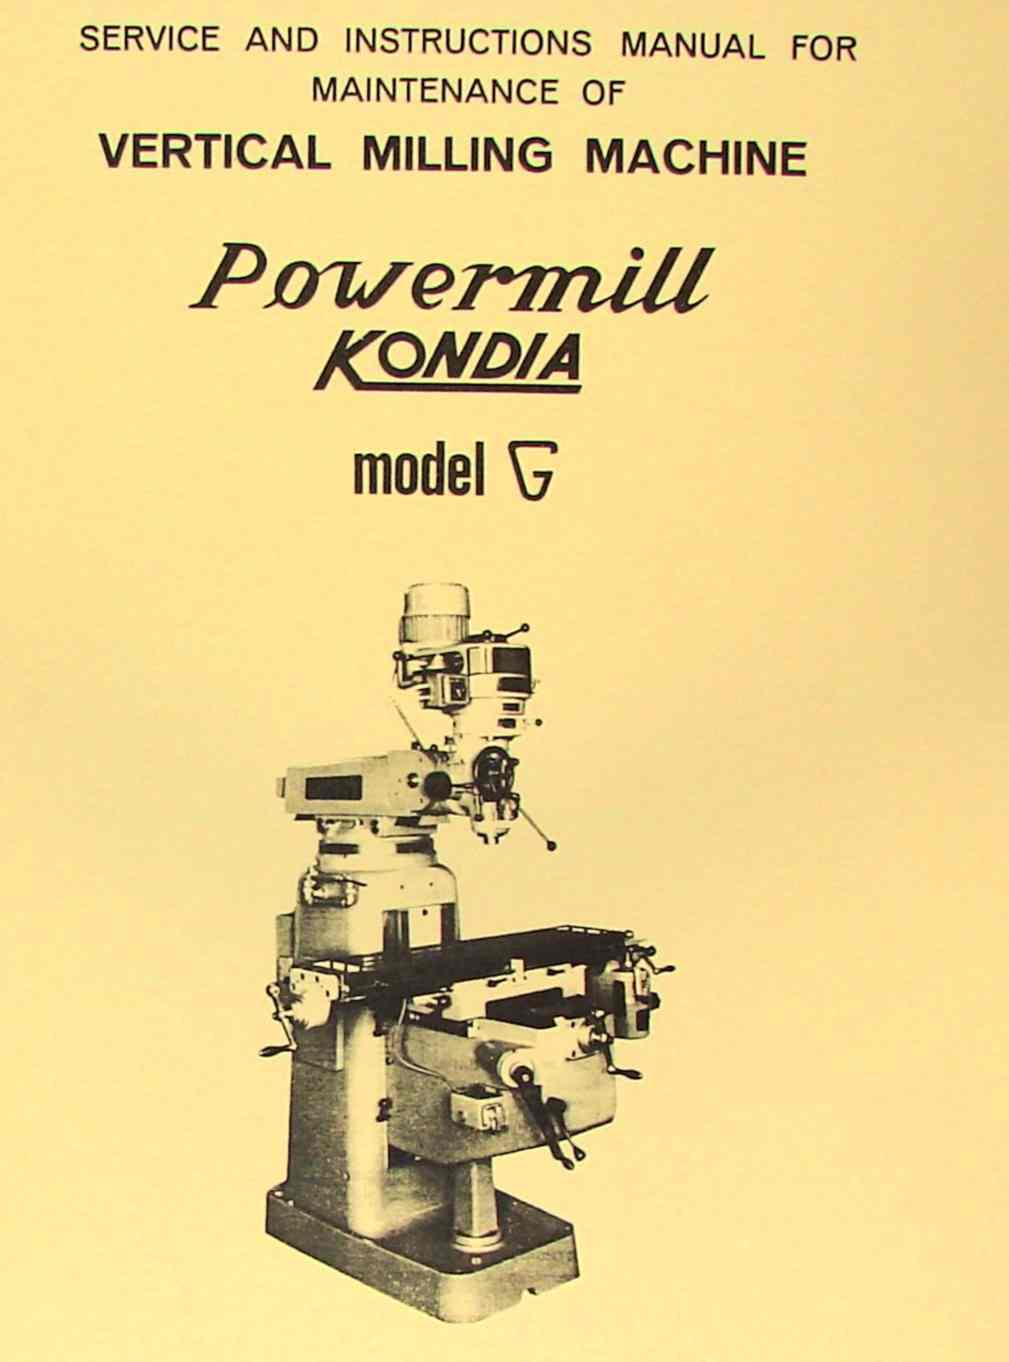 0425 kondia fv 1 milling machine operator's manual ozark tool manuals  at virtualis.co